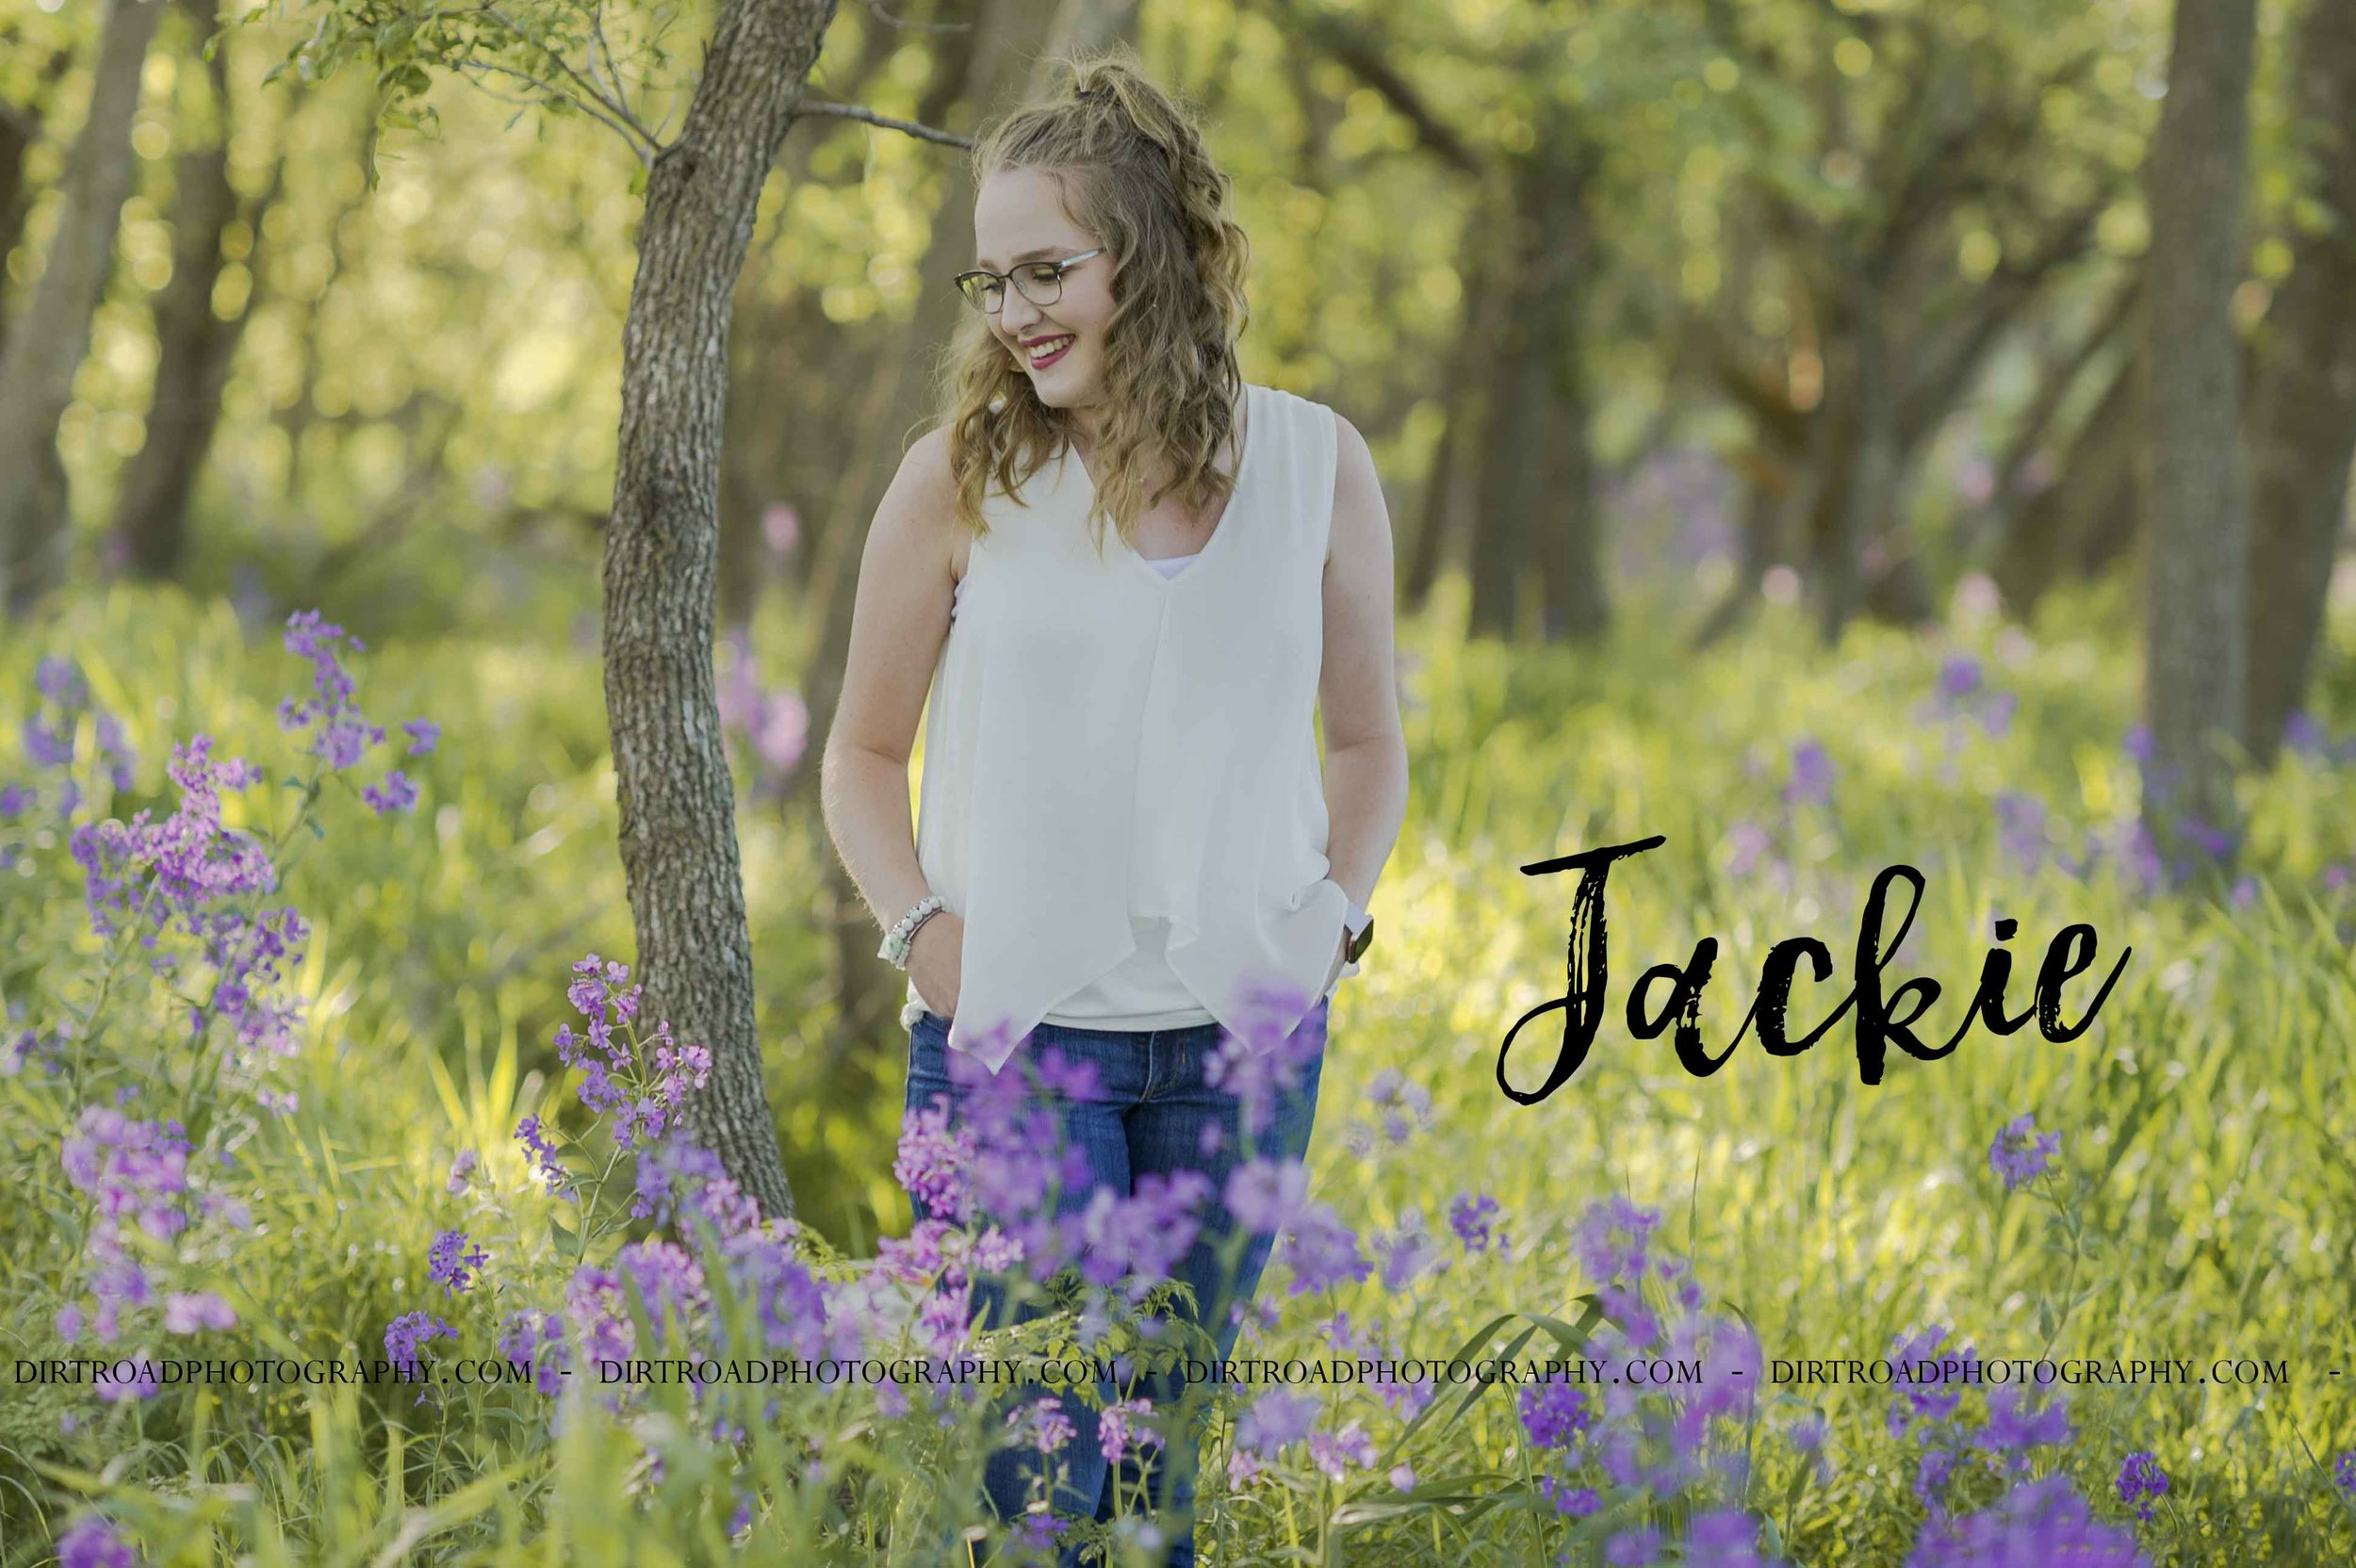 images of high school girl senior photos named jackie kalkwarf of wilber nebraska who went to wilber-clatonia high school in nebraska and is part of the class of 2020. photos were taken near swanton nebraska in saline county. photo includes purple spring flowers at sunset with girl in white flowy shirt and jeans standing in tall natural grass with trees surrounding her. teen has curly long brown hair. photos taken at sunset near water and farm pond. photographer is kelsey homolka nerud of wilber nebraska who specializes in high school senior photography and senior pictures.